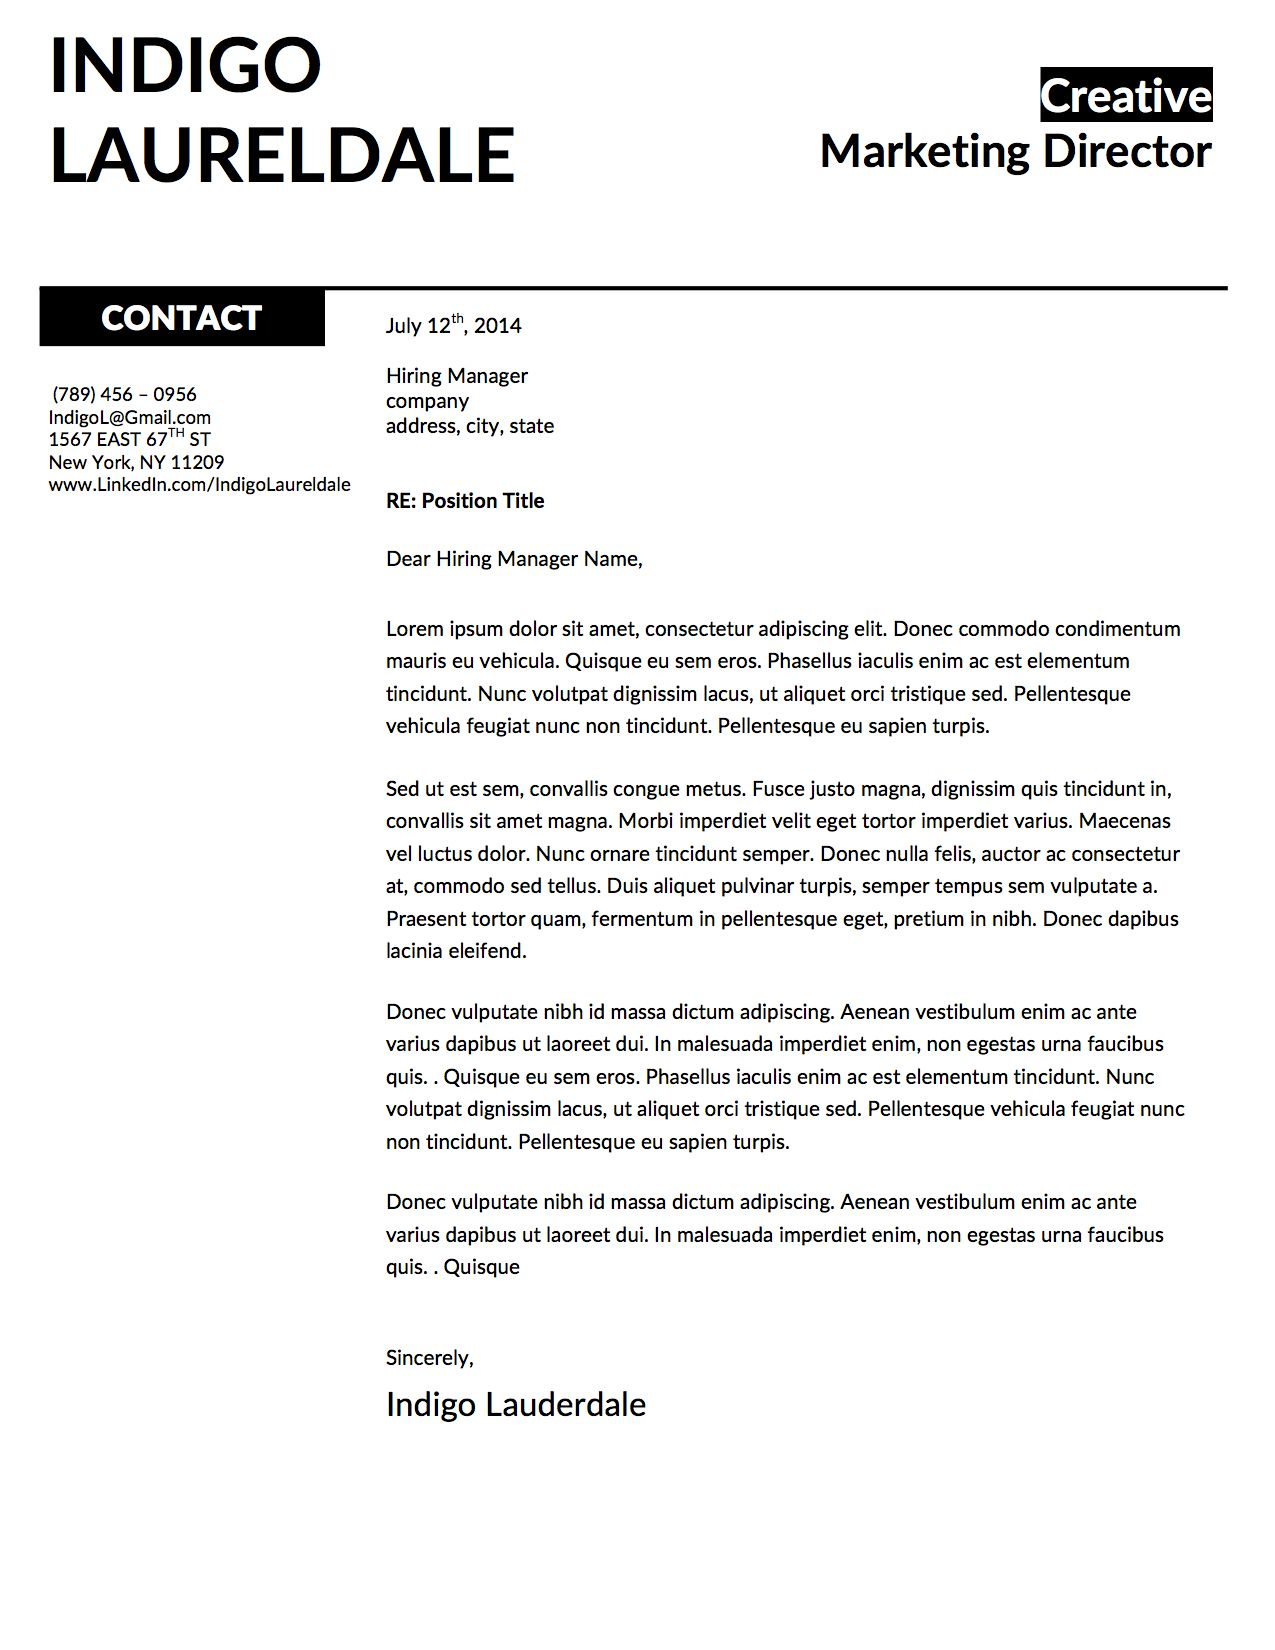 INDIGO Lauderdale Cover Letter Template For Microsoft Word  Microsoft Cover Letter Templates